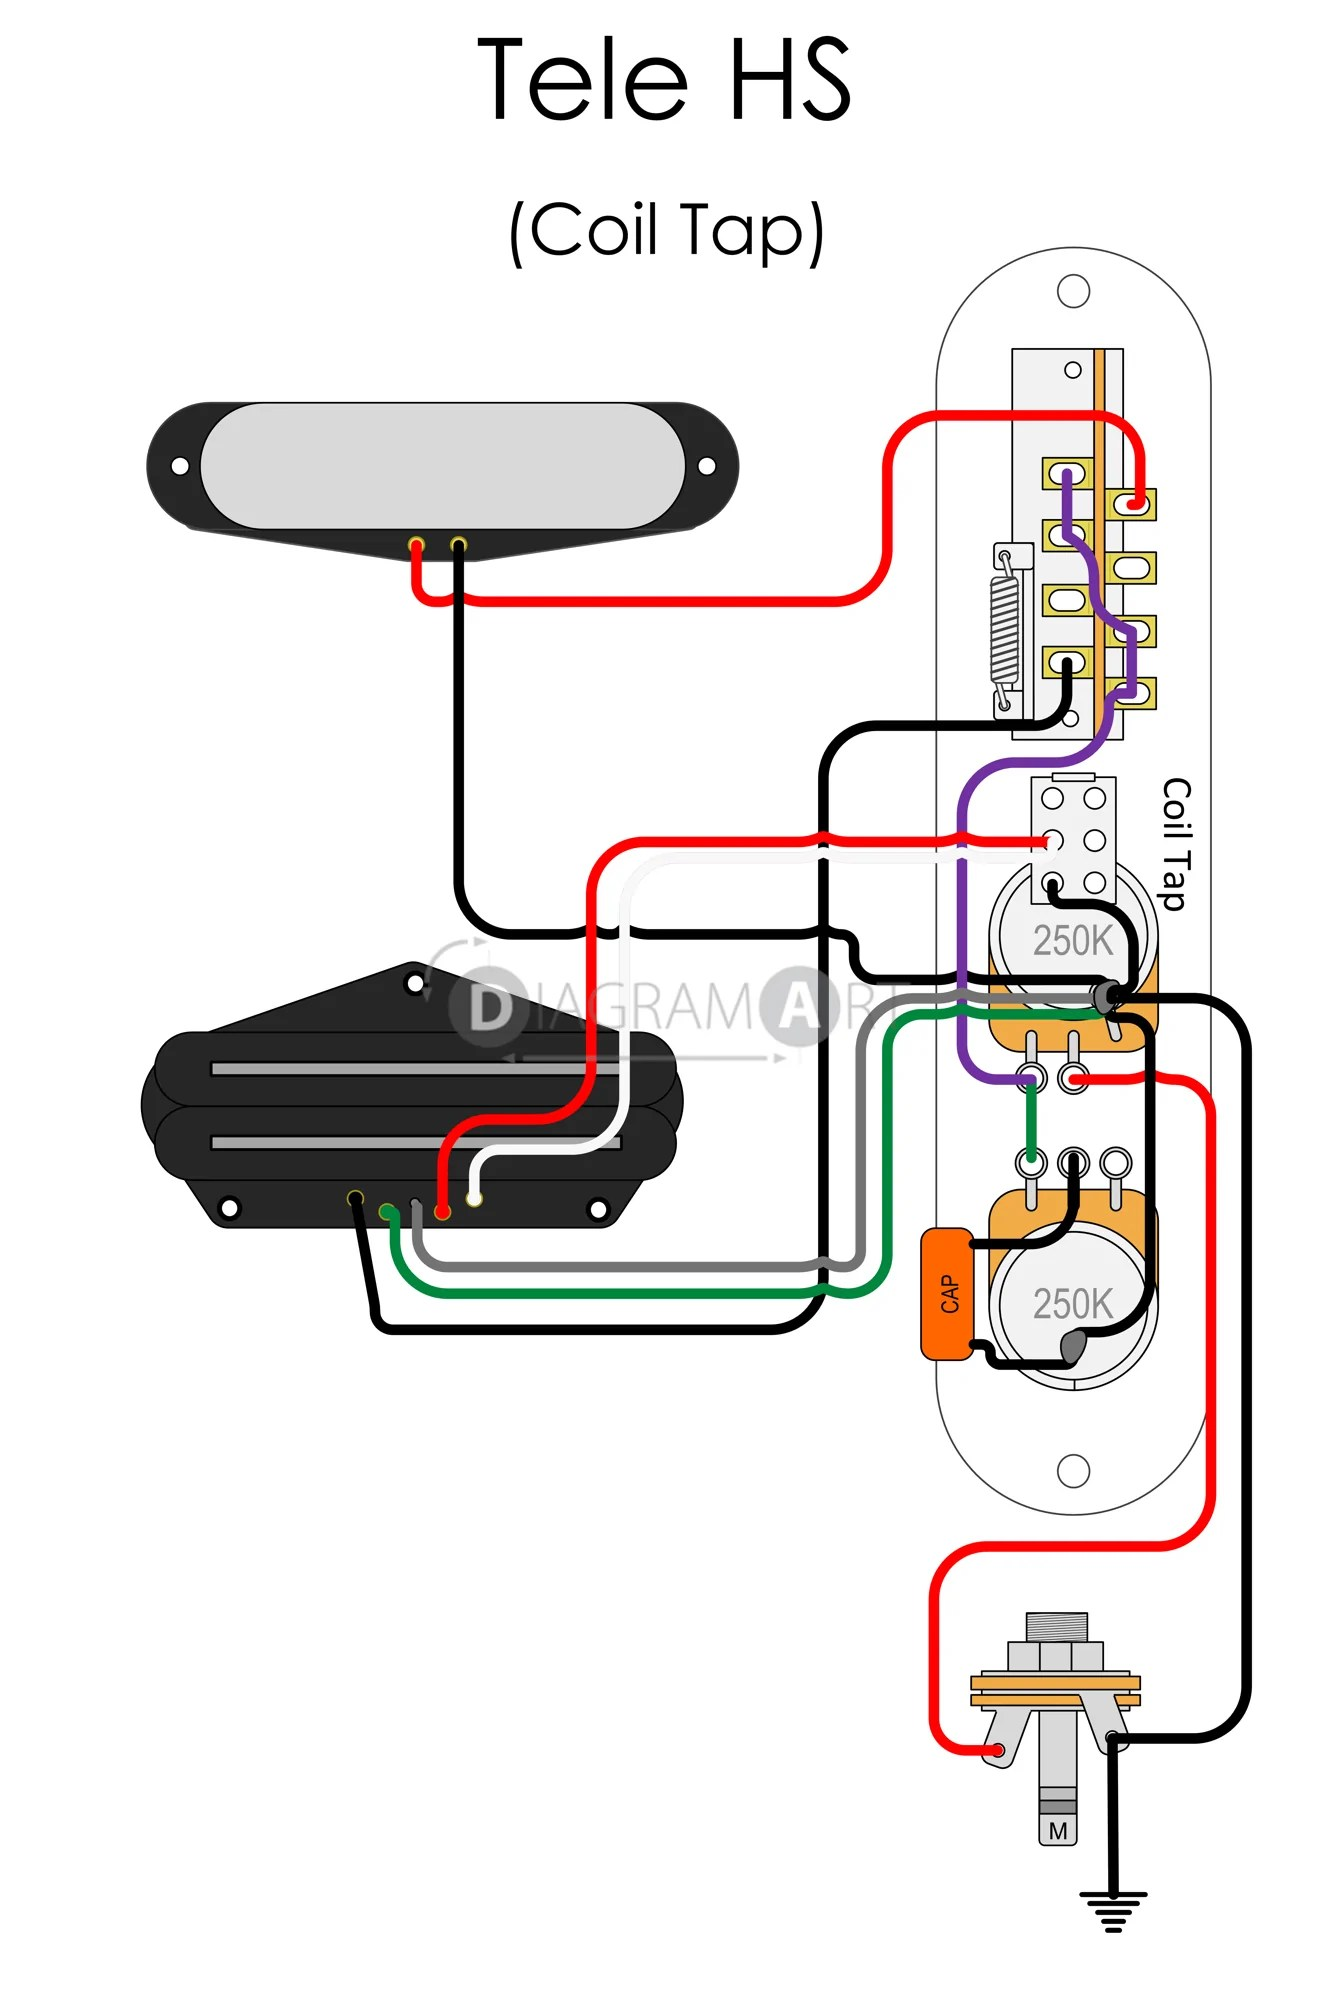 hight resolution of electric guitar wiring tele hs coil tap electric circuit hs tele wiring diagram